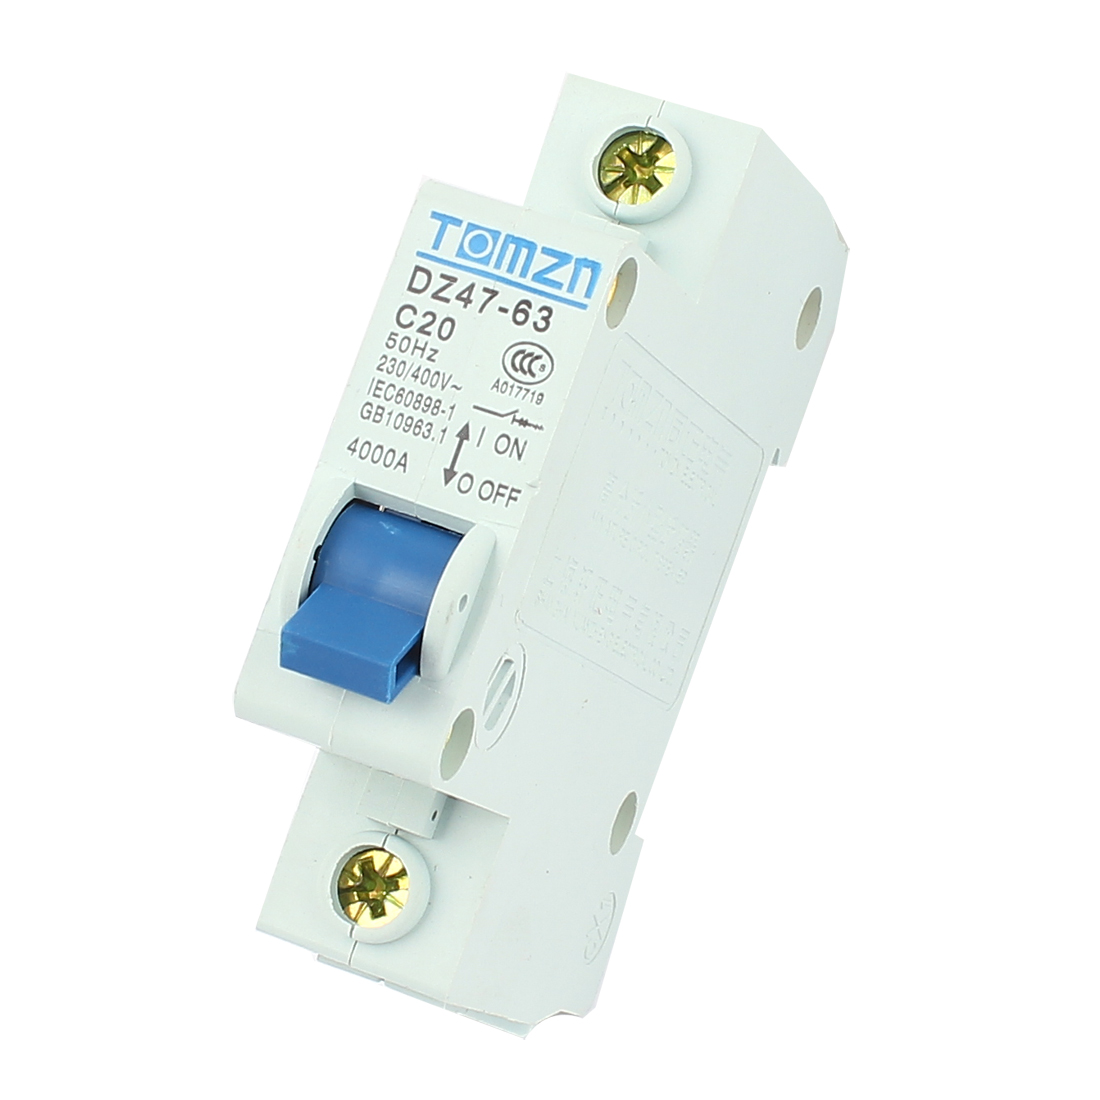 AC 230/400 20A 4000A 50Hz Single Pole ON/OFF Safety Switch Miniature Circuit Breaker